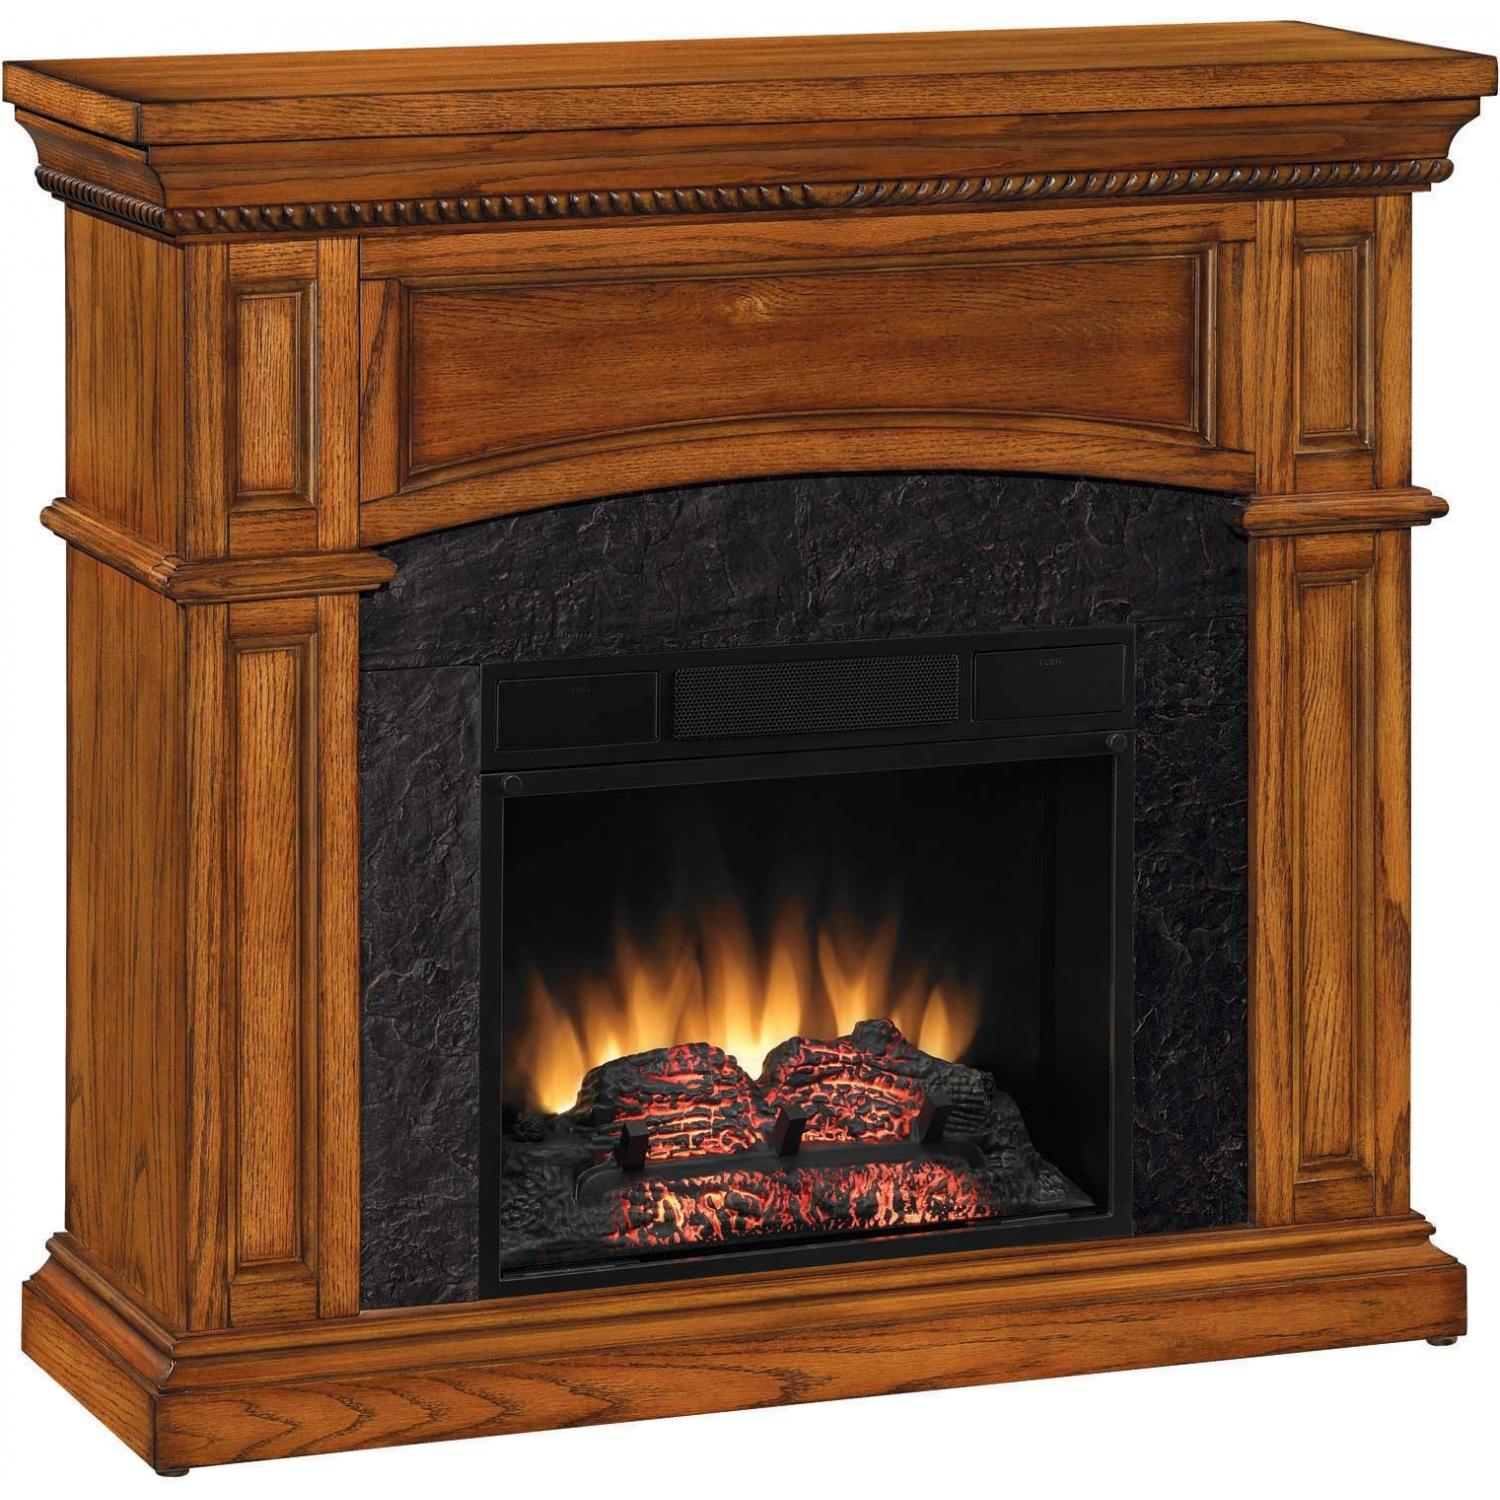 ClassicFlame 18DM1141-O107 Nantucket 18 Inch Dual Use Electric Fireplace - Premium Oak